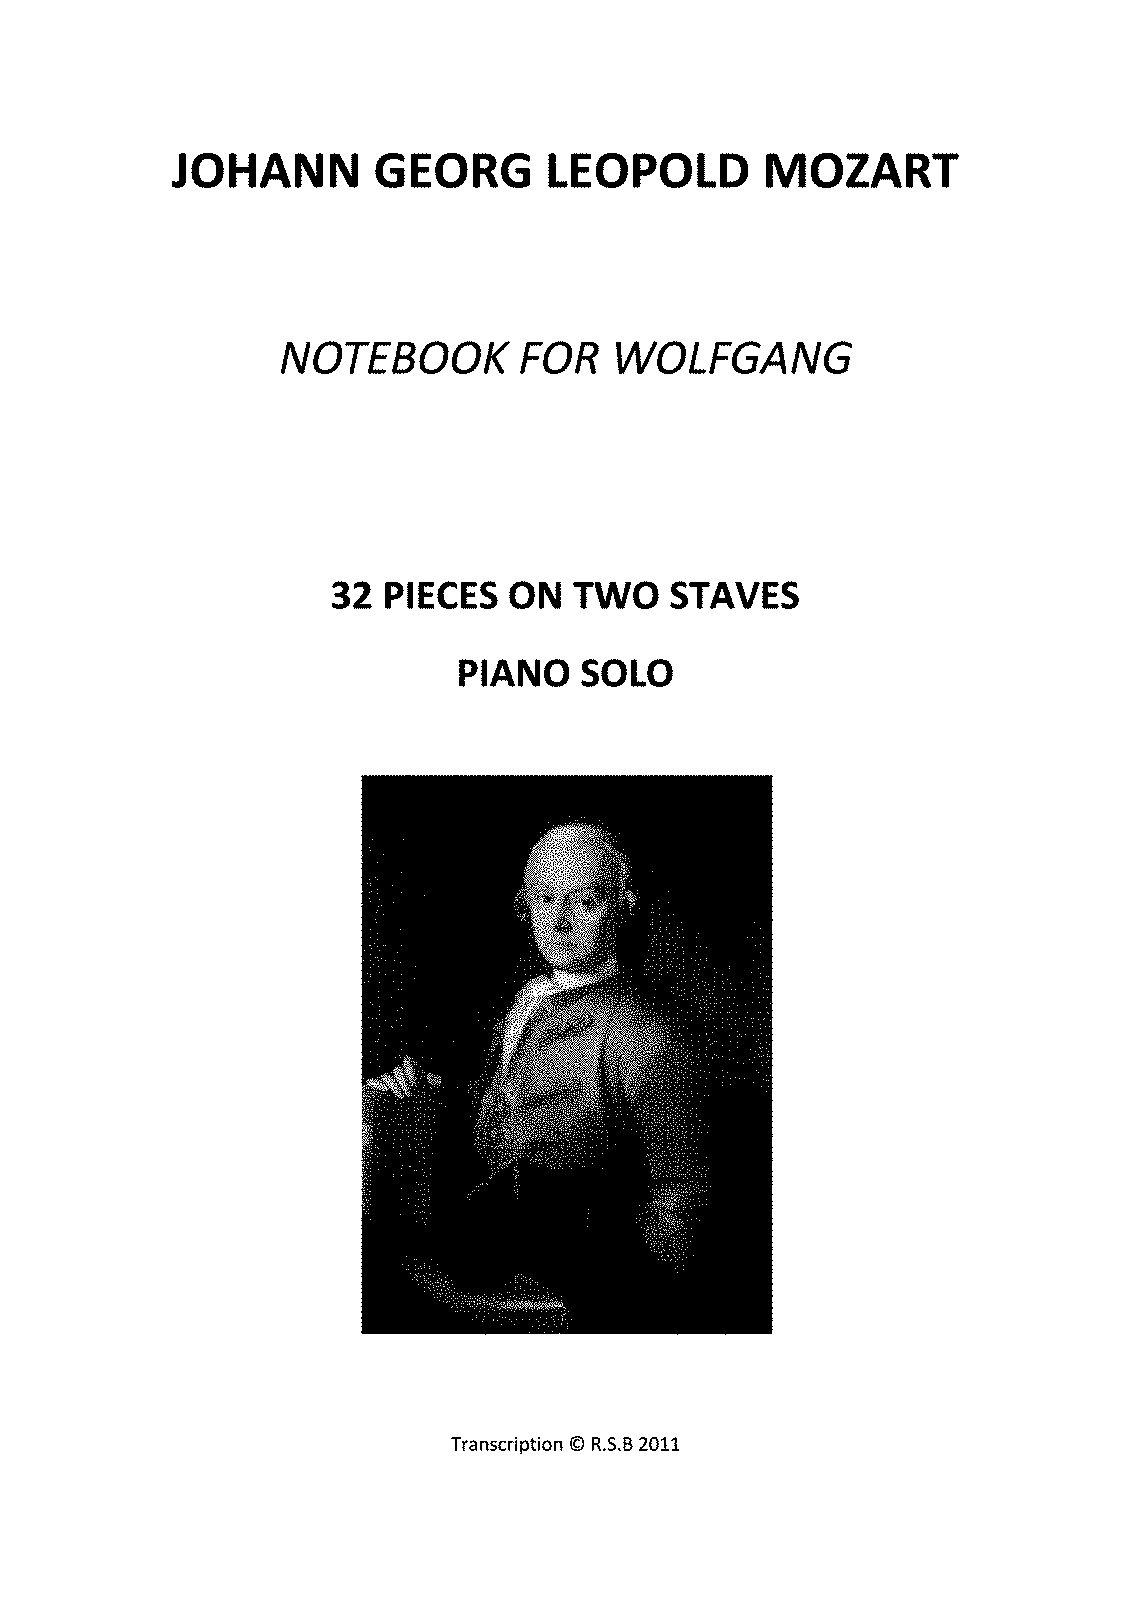 PMLP226804-Notebook for Wolfgang.pdf